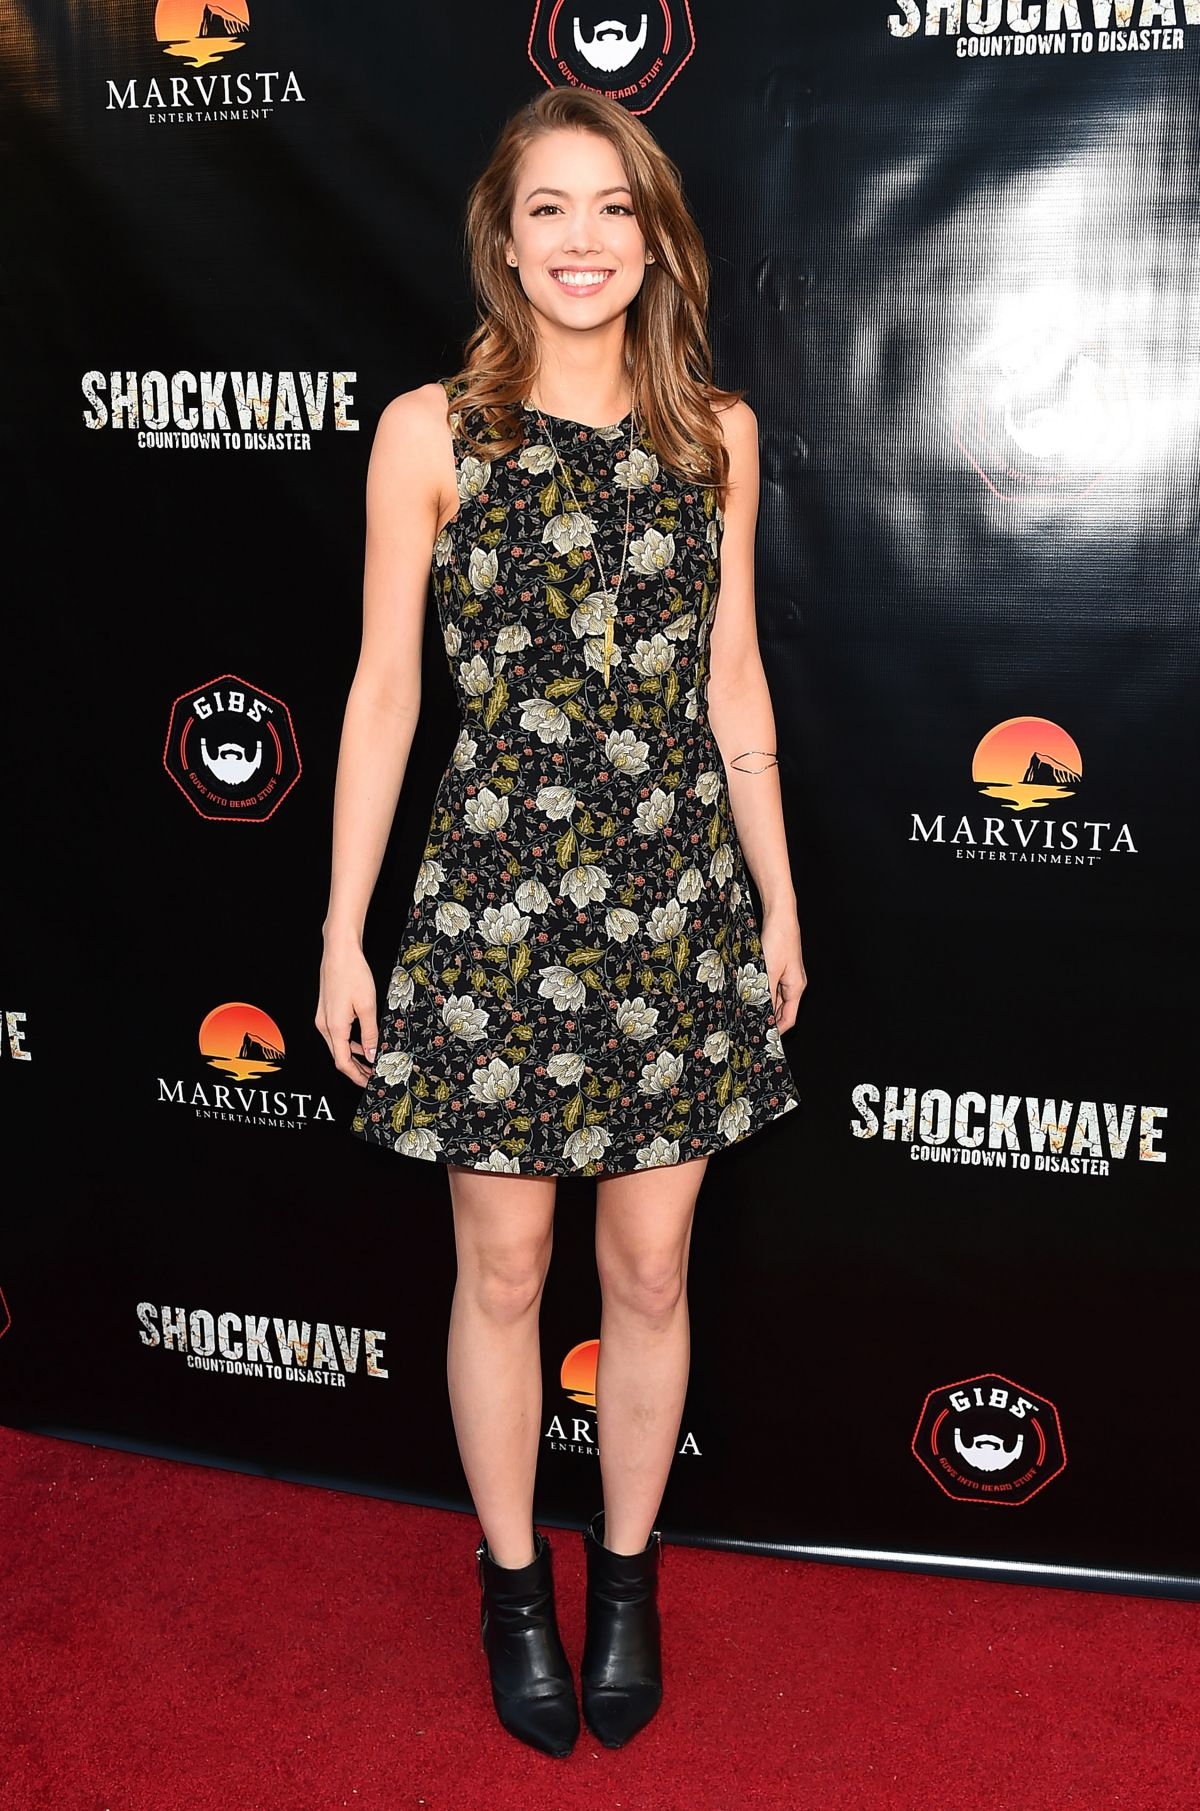 MORGAN LINDHOLM at Shockwave Premiere in Los Angeles 05/11/2017